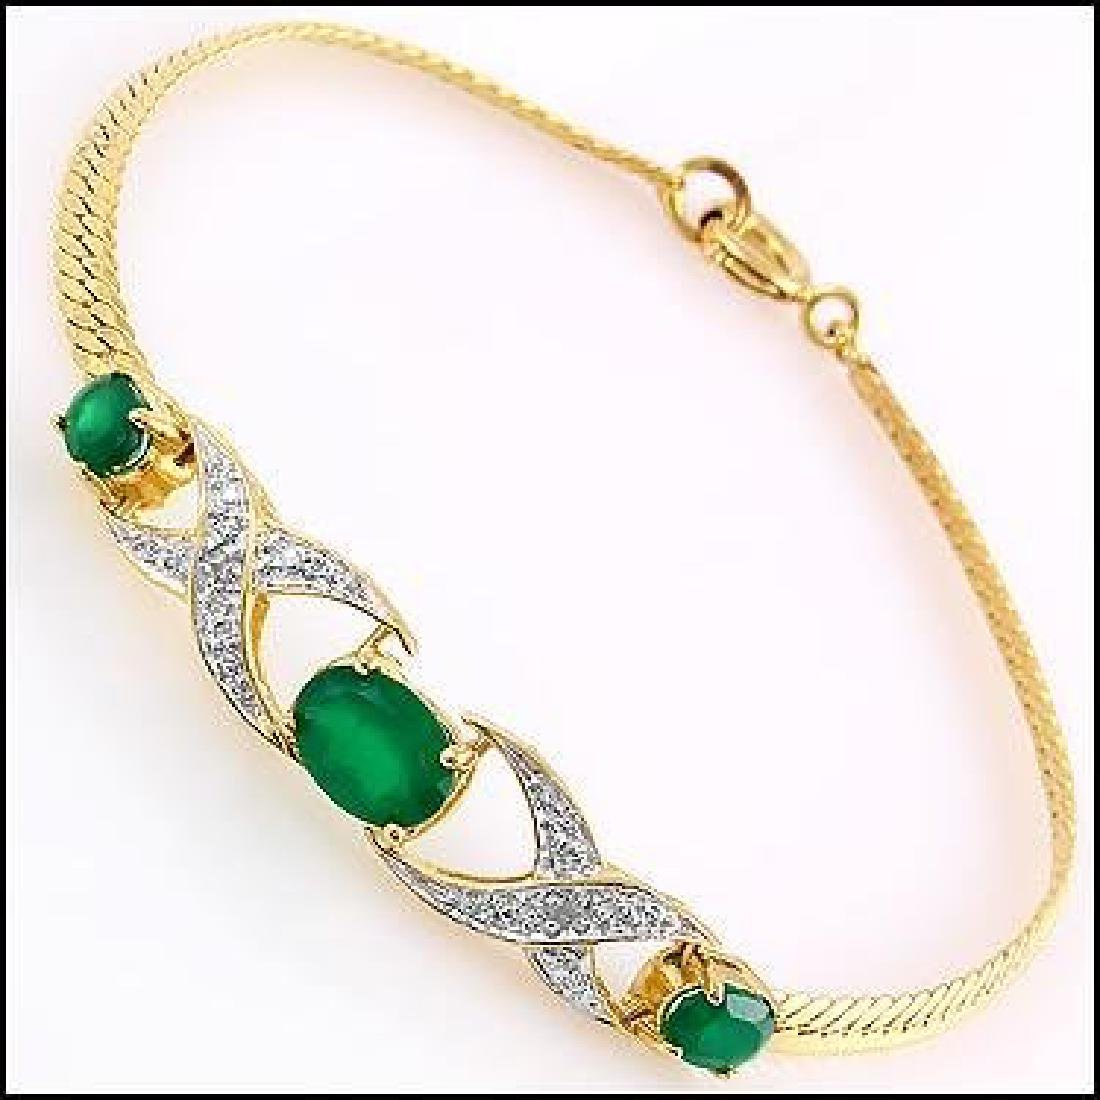 4.7 CT Green Agate Diamond Bracelet